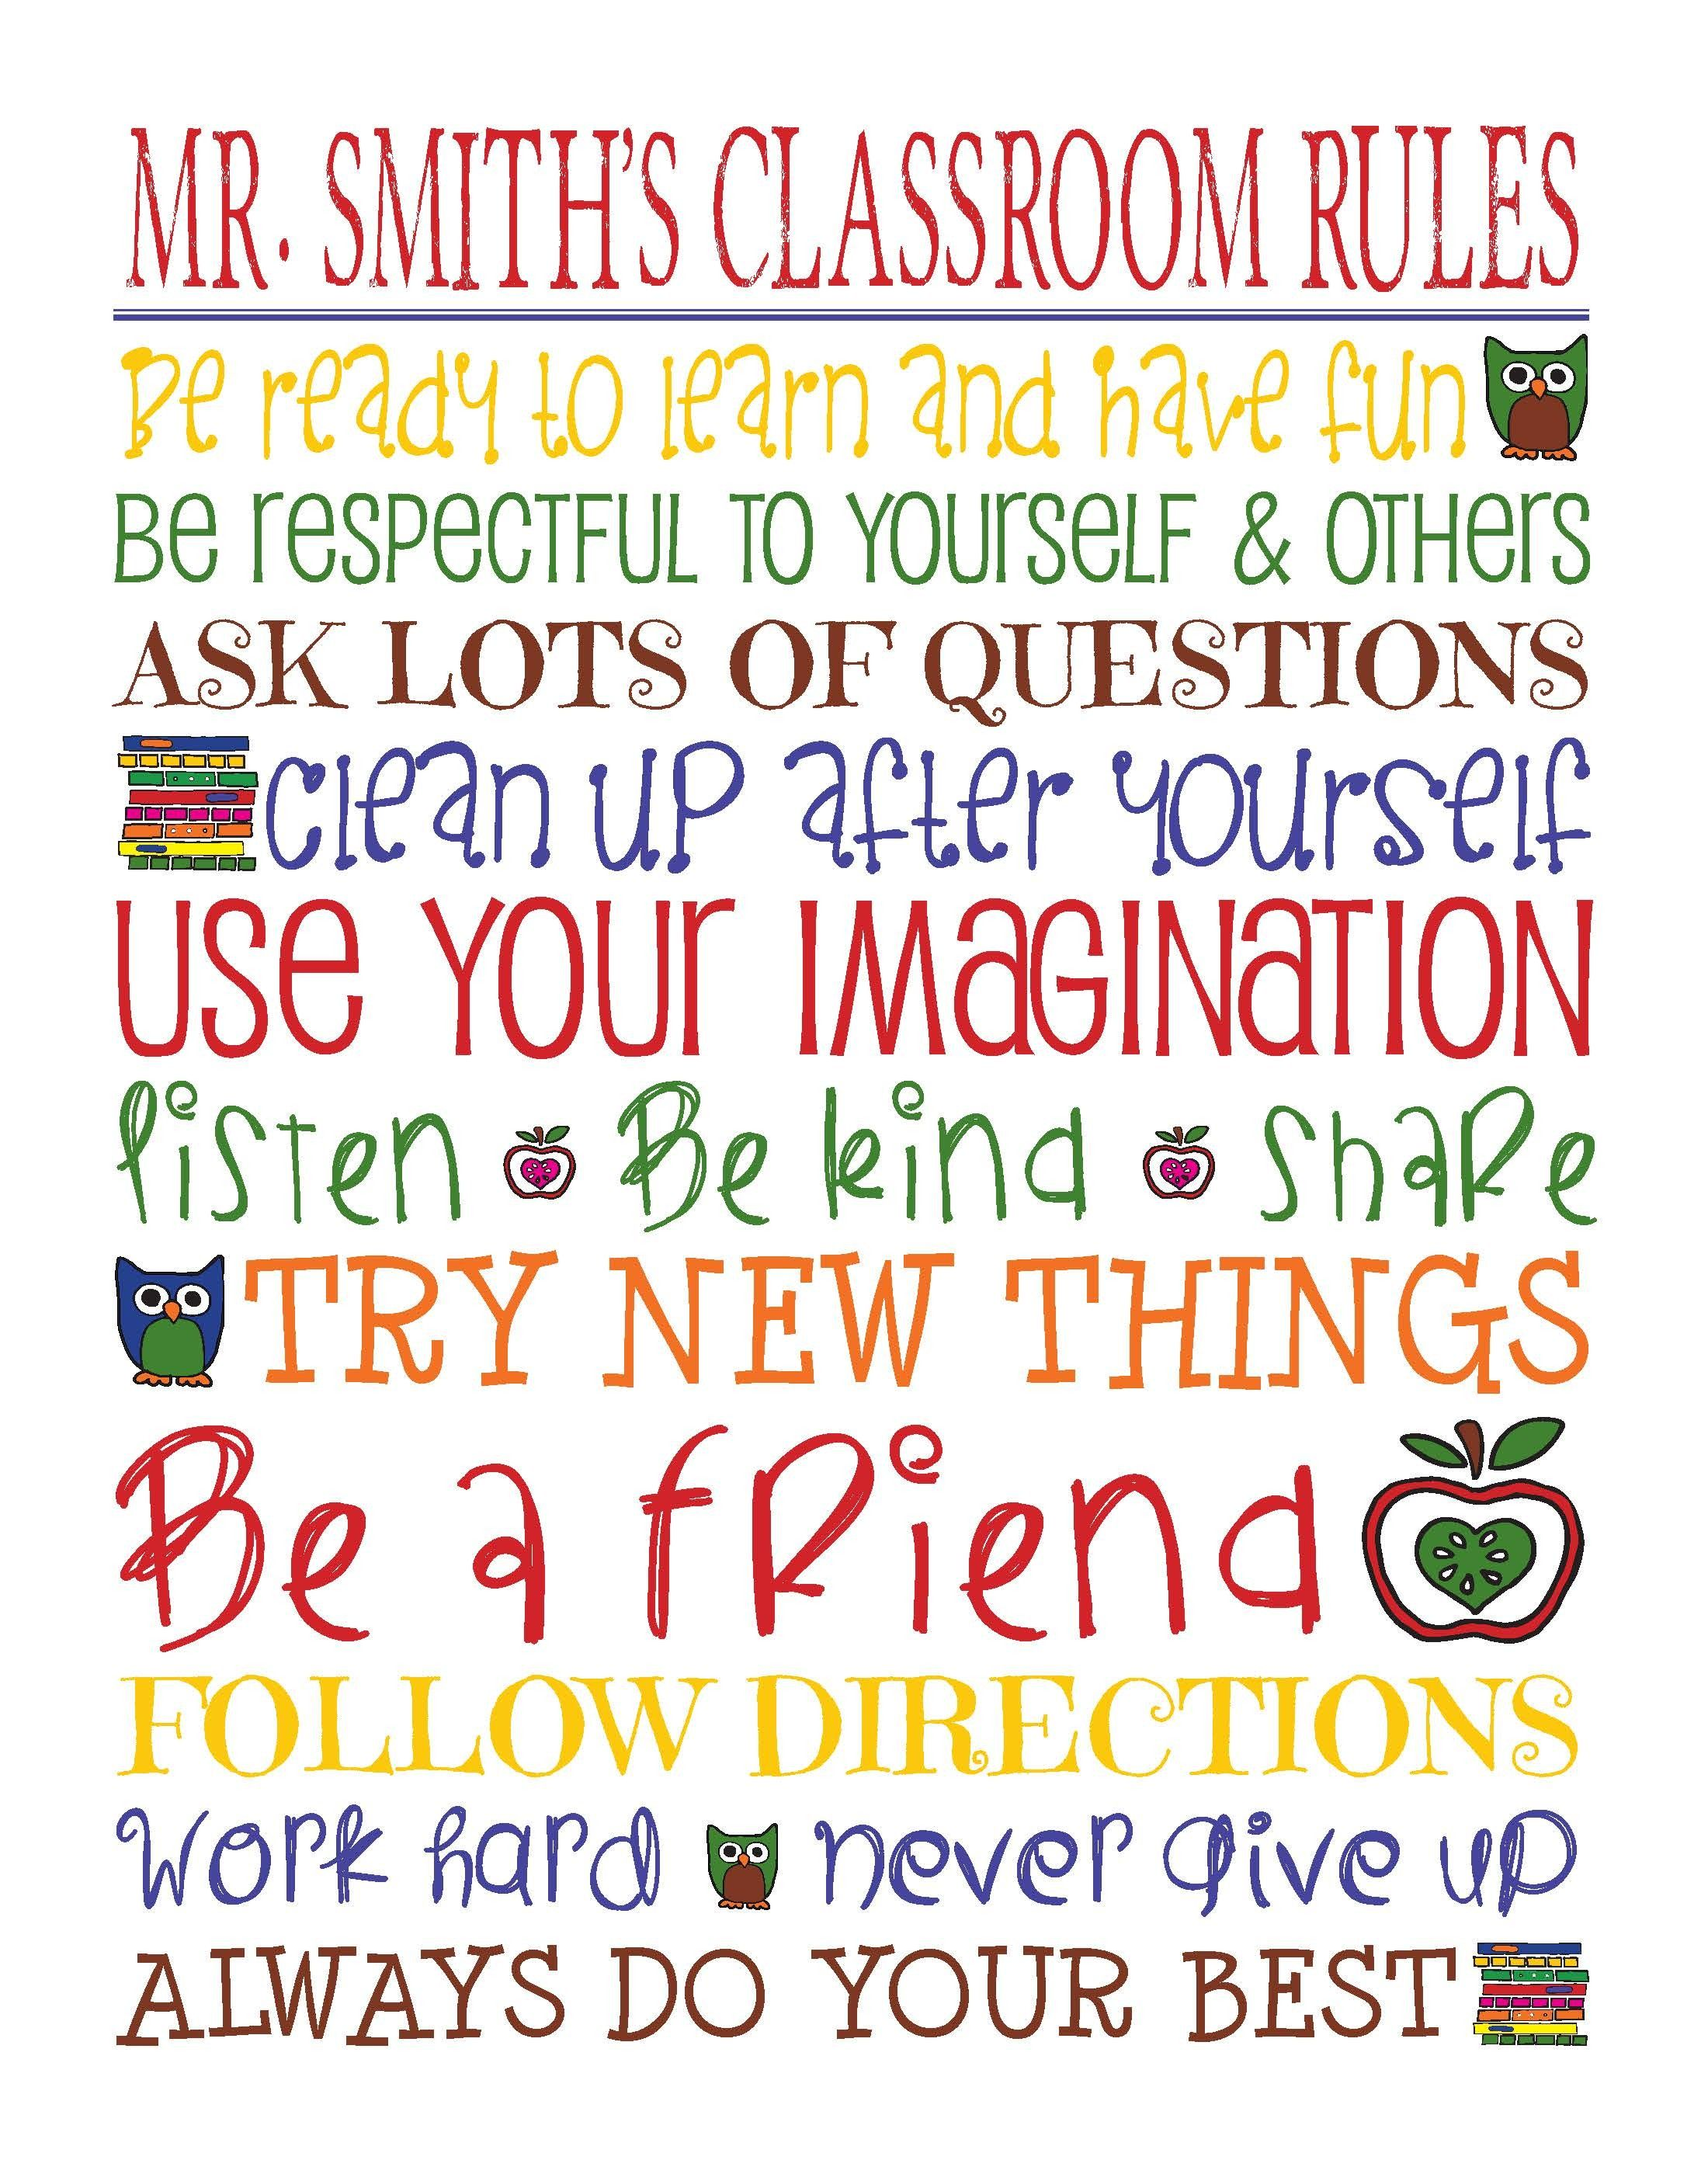 Personalized Classroom Rules House Rules Day Care Rules